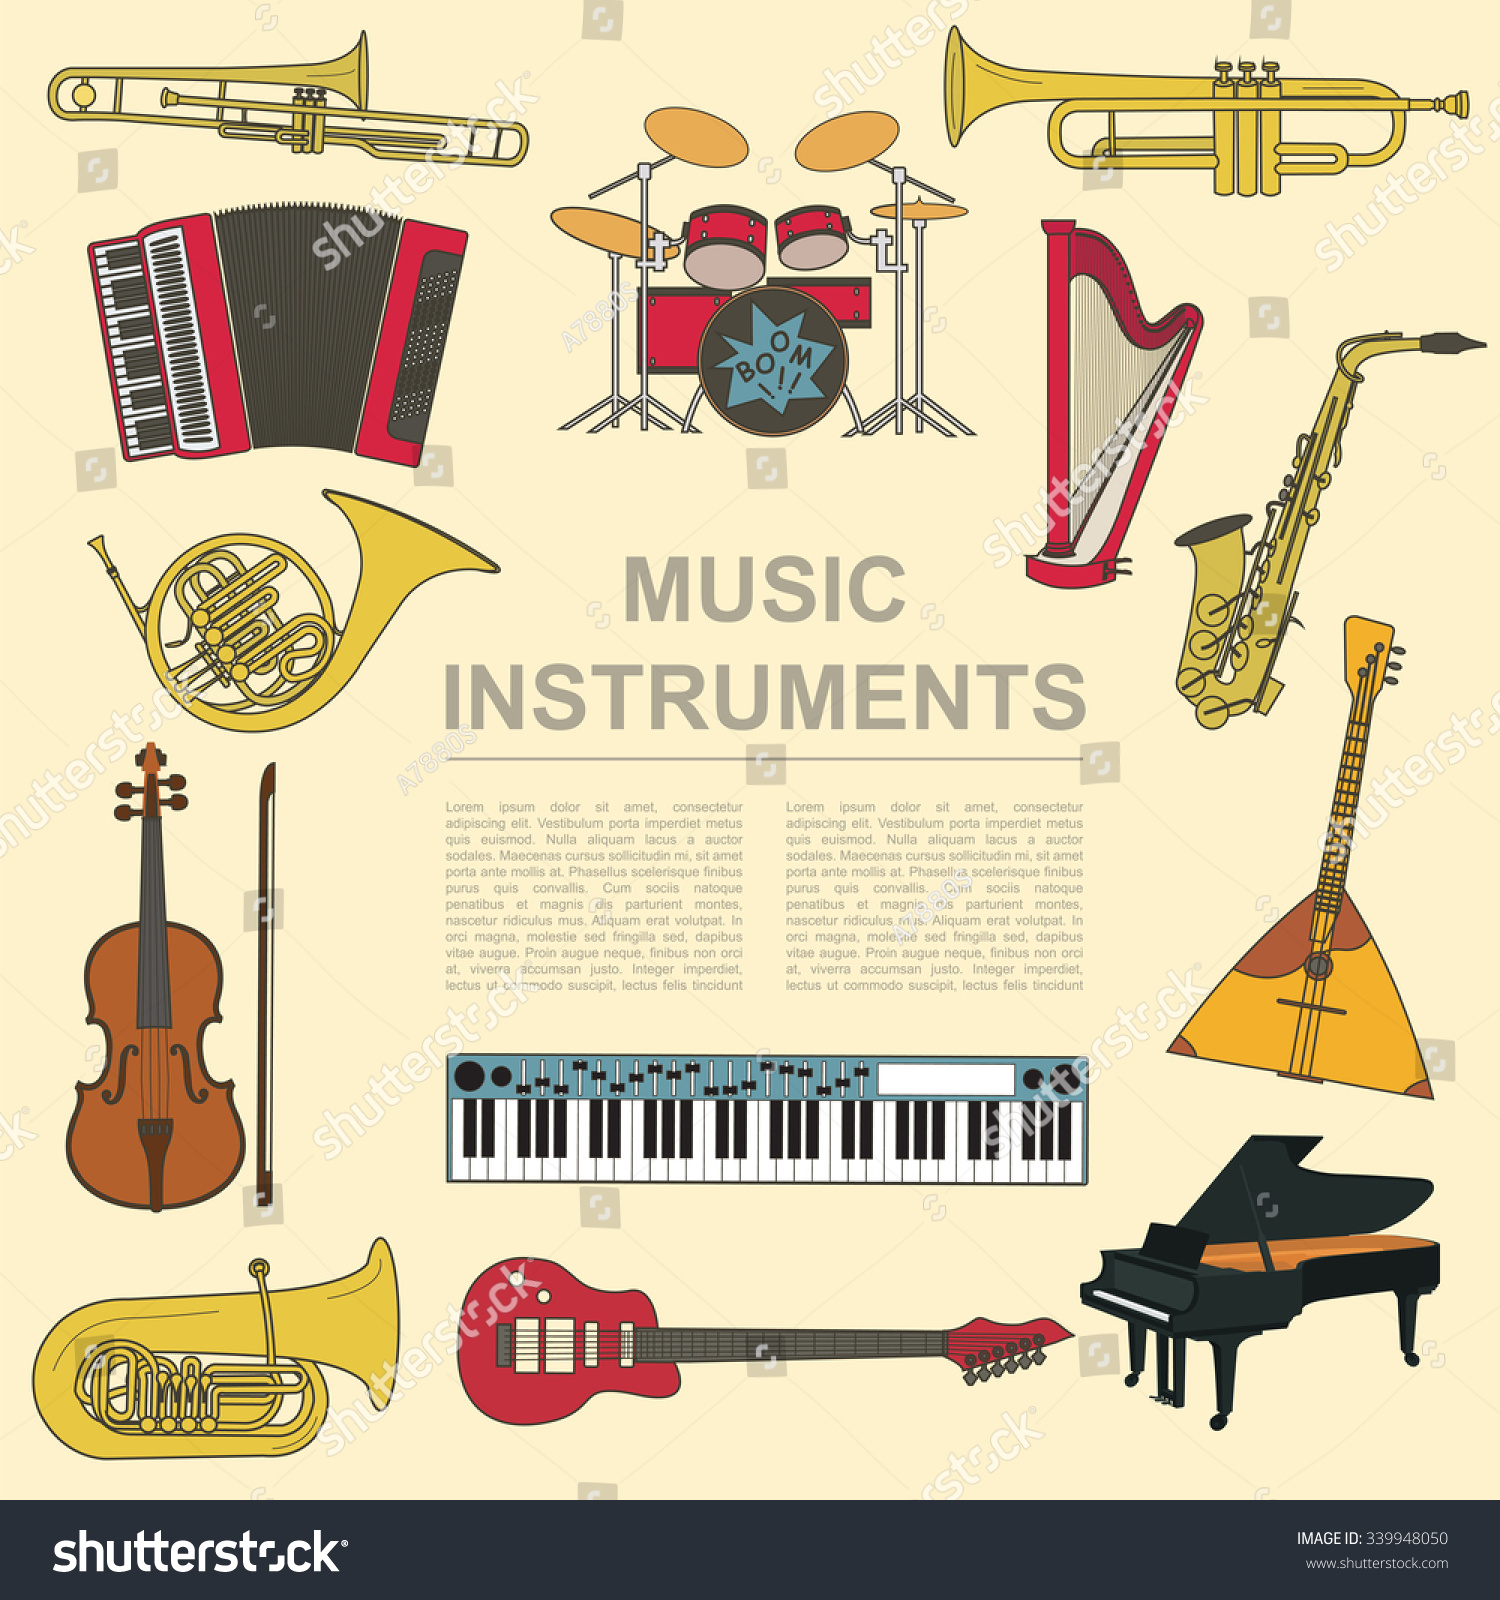 Printables Types Of Musical Instrument musical instruments graphic template all types stock vector of infographic illustration